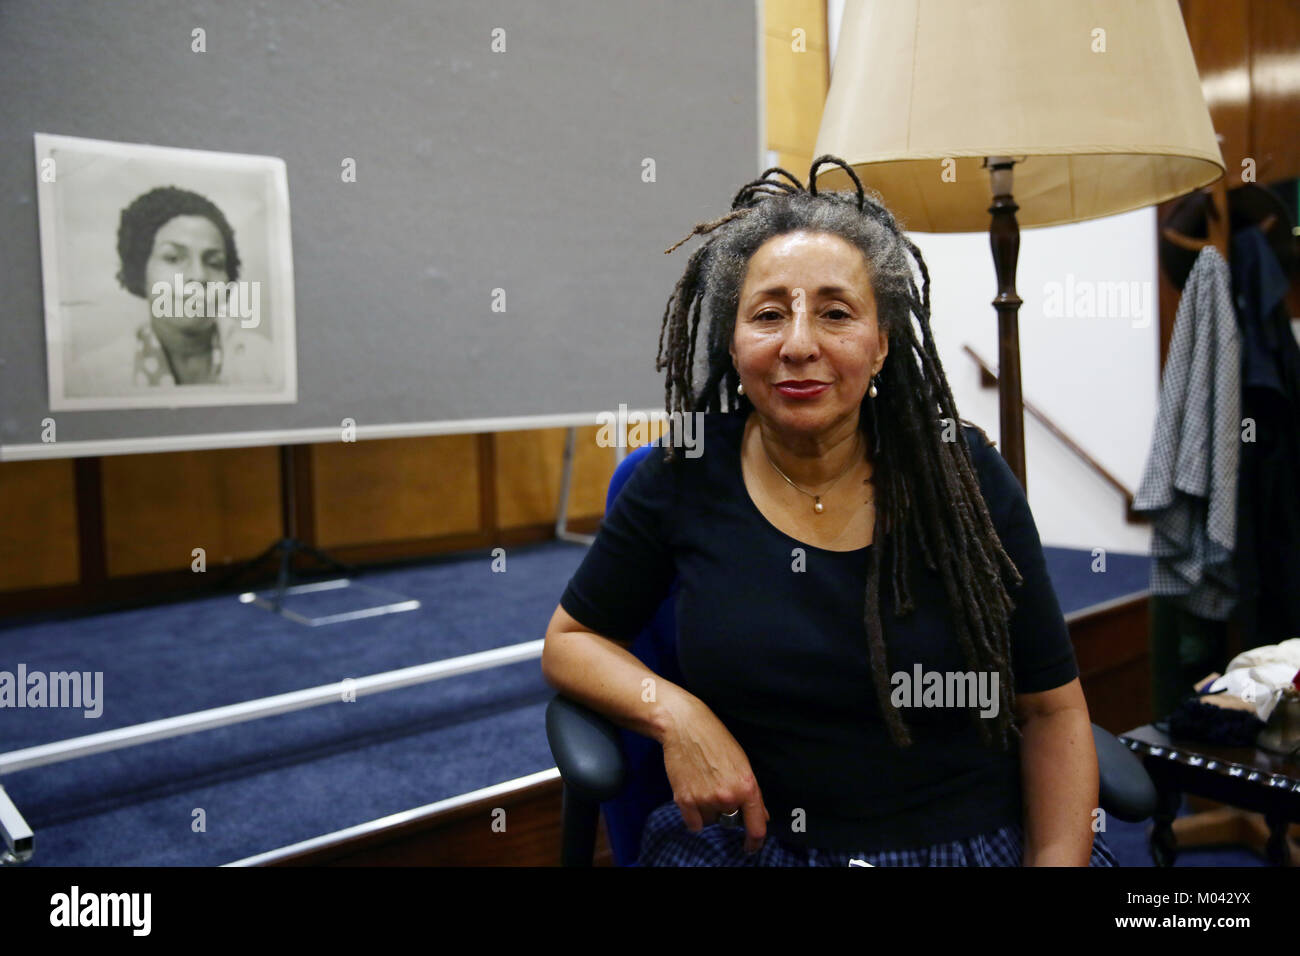 Manchester, UK. 18th january, 2018. Jackie Walker sat on a stage, a photo of her Mother is hung behind her. Her - Stock Image